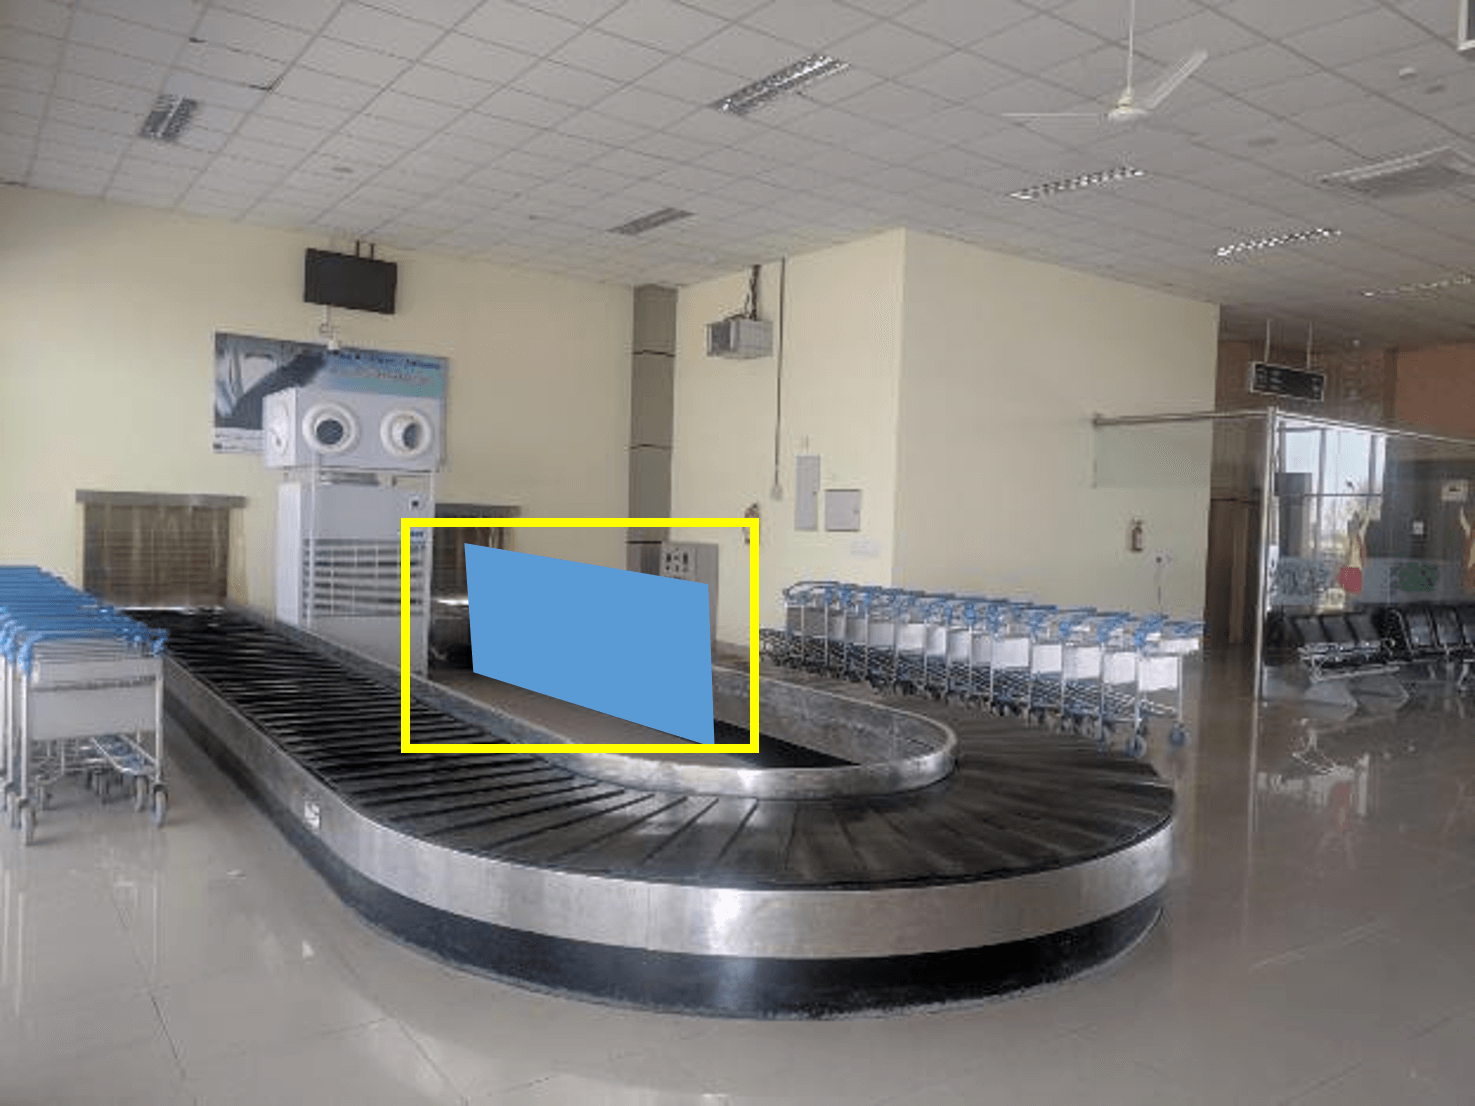 Option No.1 Branding at Airport, Arrival - Conveyor Belt, Bathinda